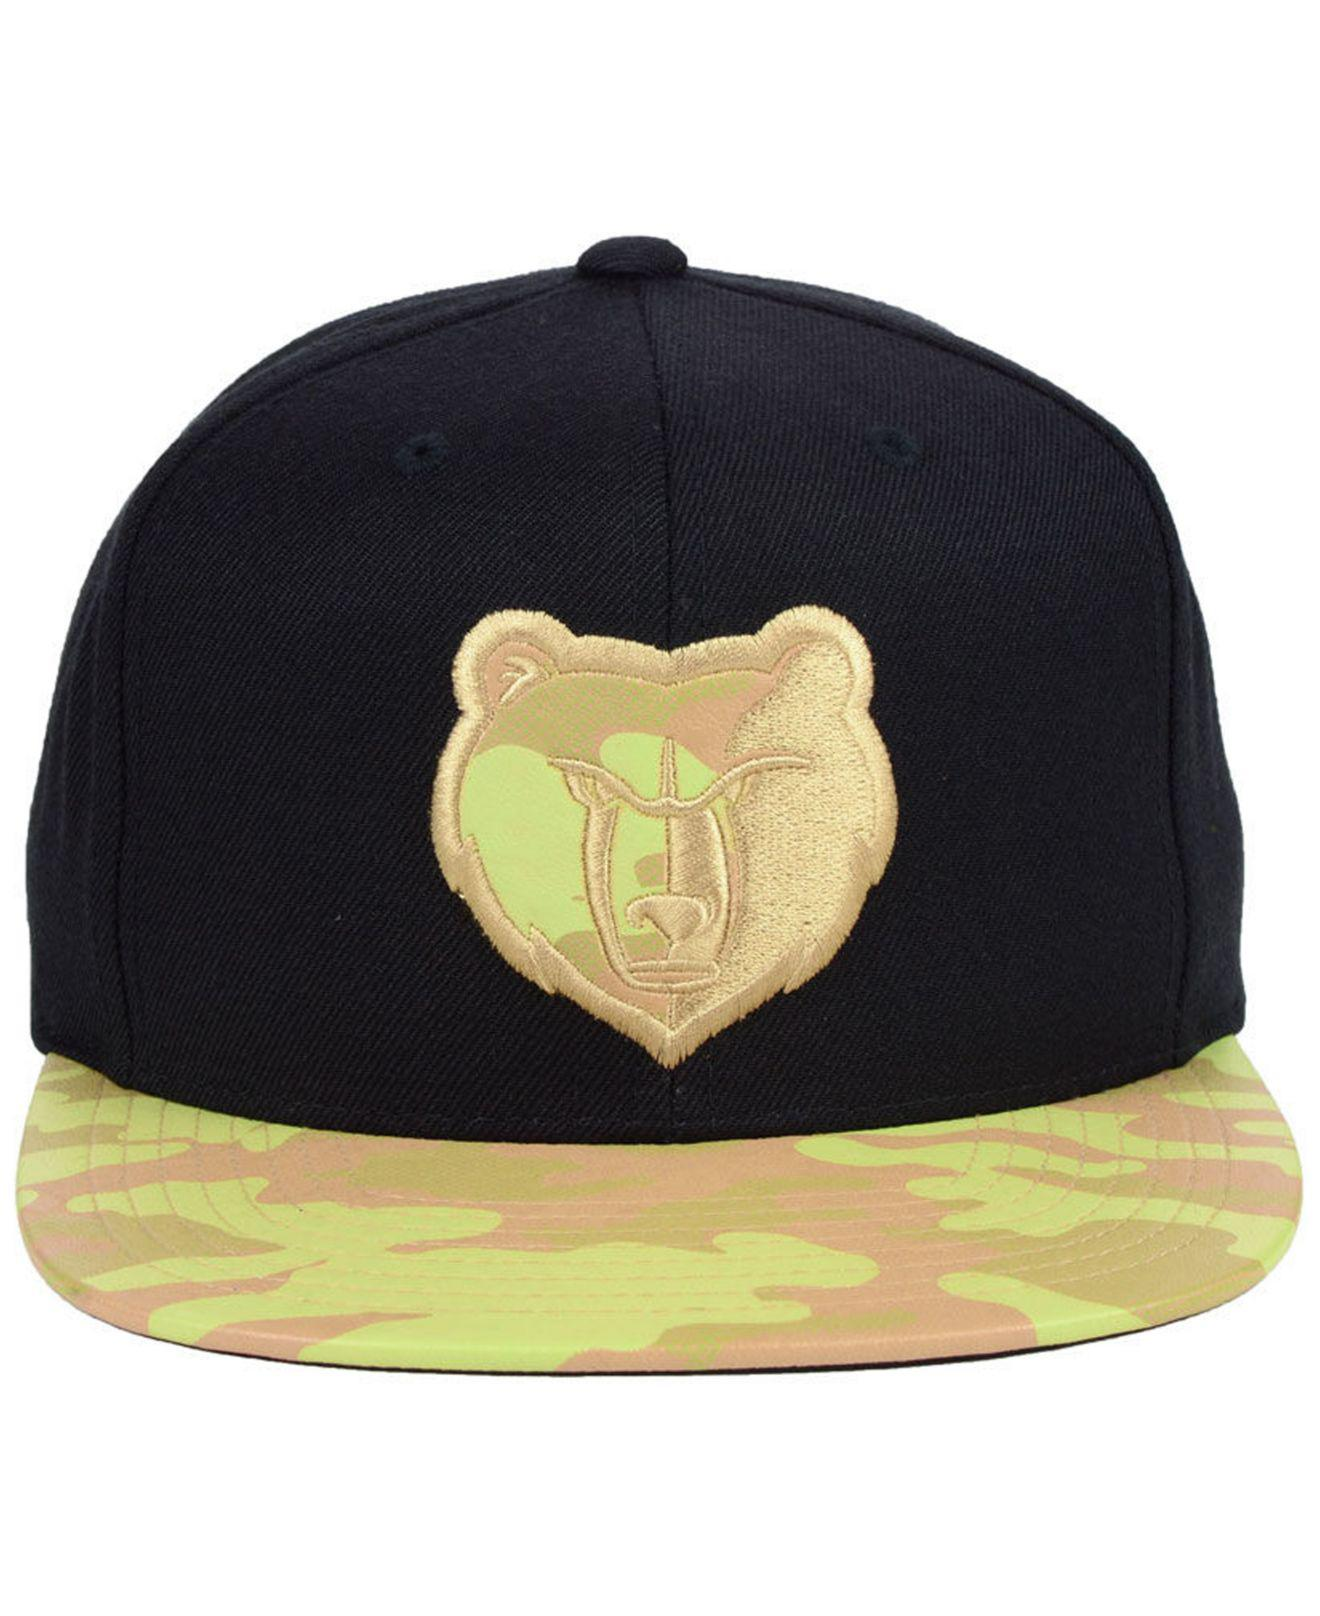 sports shoes 972c1 76db3 Lyst - Mitchell   Ness Memphis Grizzlies Natural Camo Snapback Cap in Black  for Men